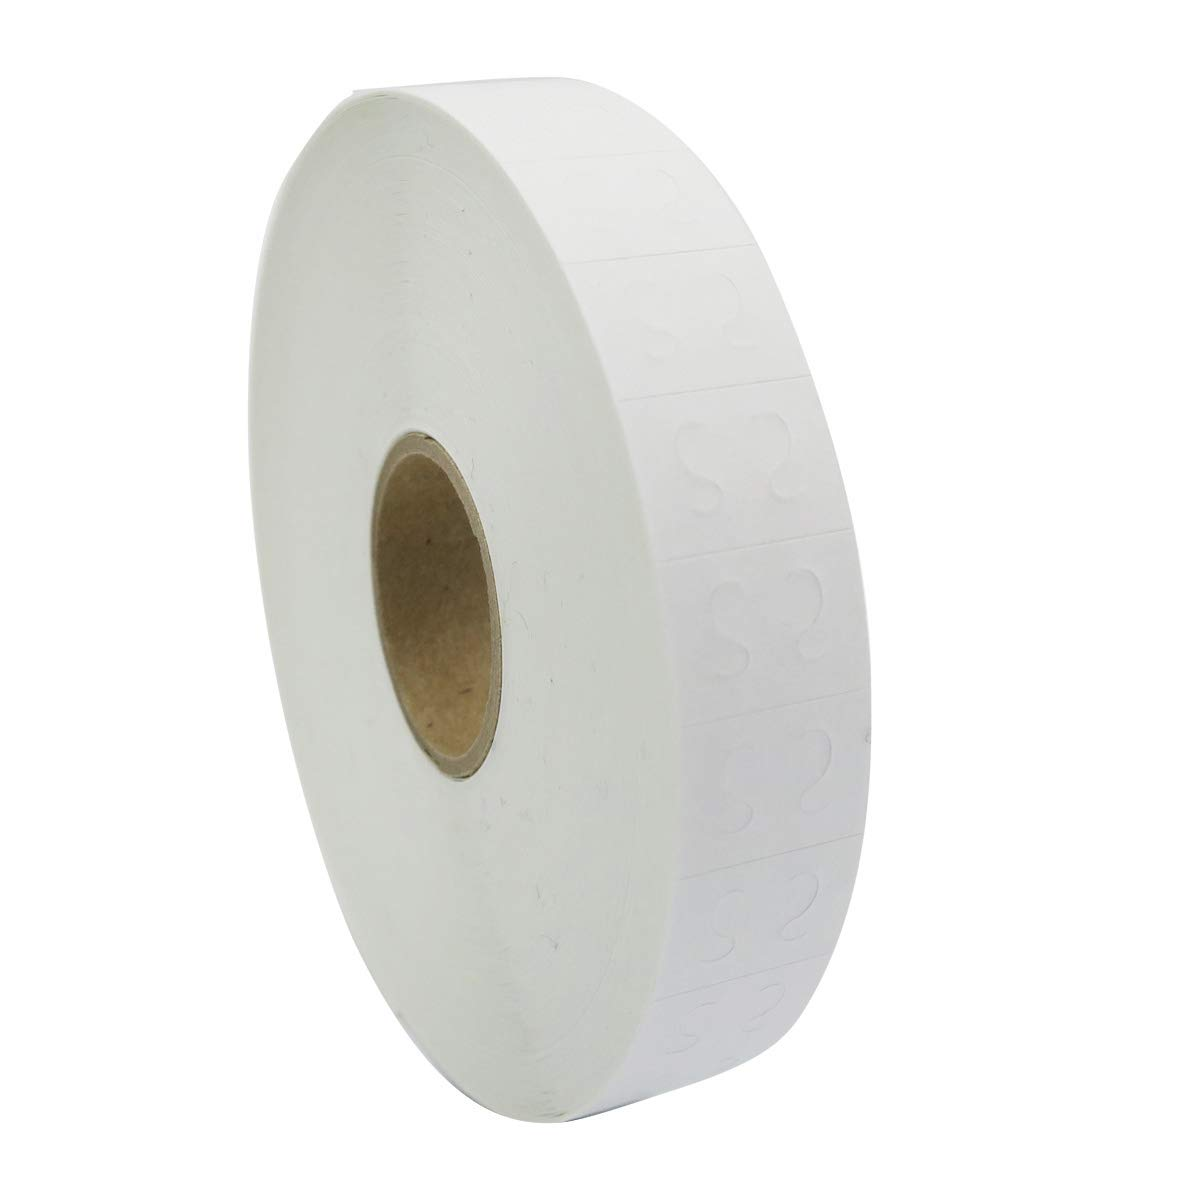 Amram 2 Line Price Marking Labels, White, 1 Sleeve of 25,000 labels (10 Rolls, 2,500 Labels Per Roll) for Monarch 1130. Includes 1 replacement Ink roller.